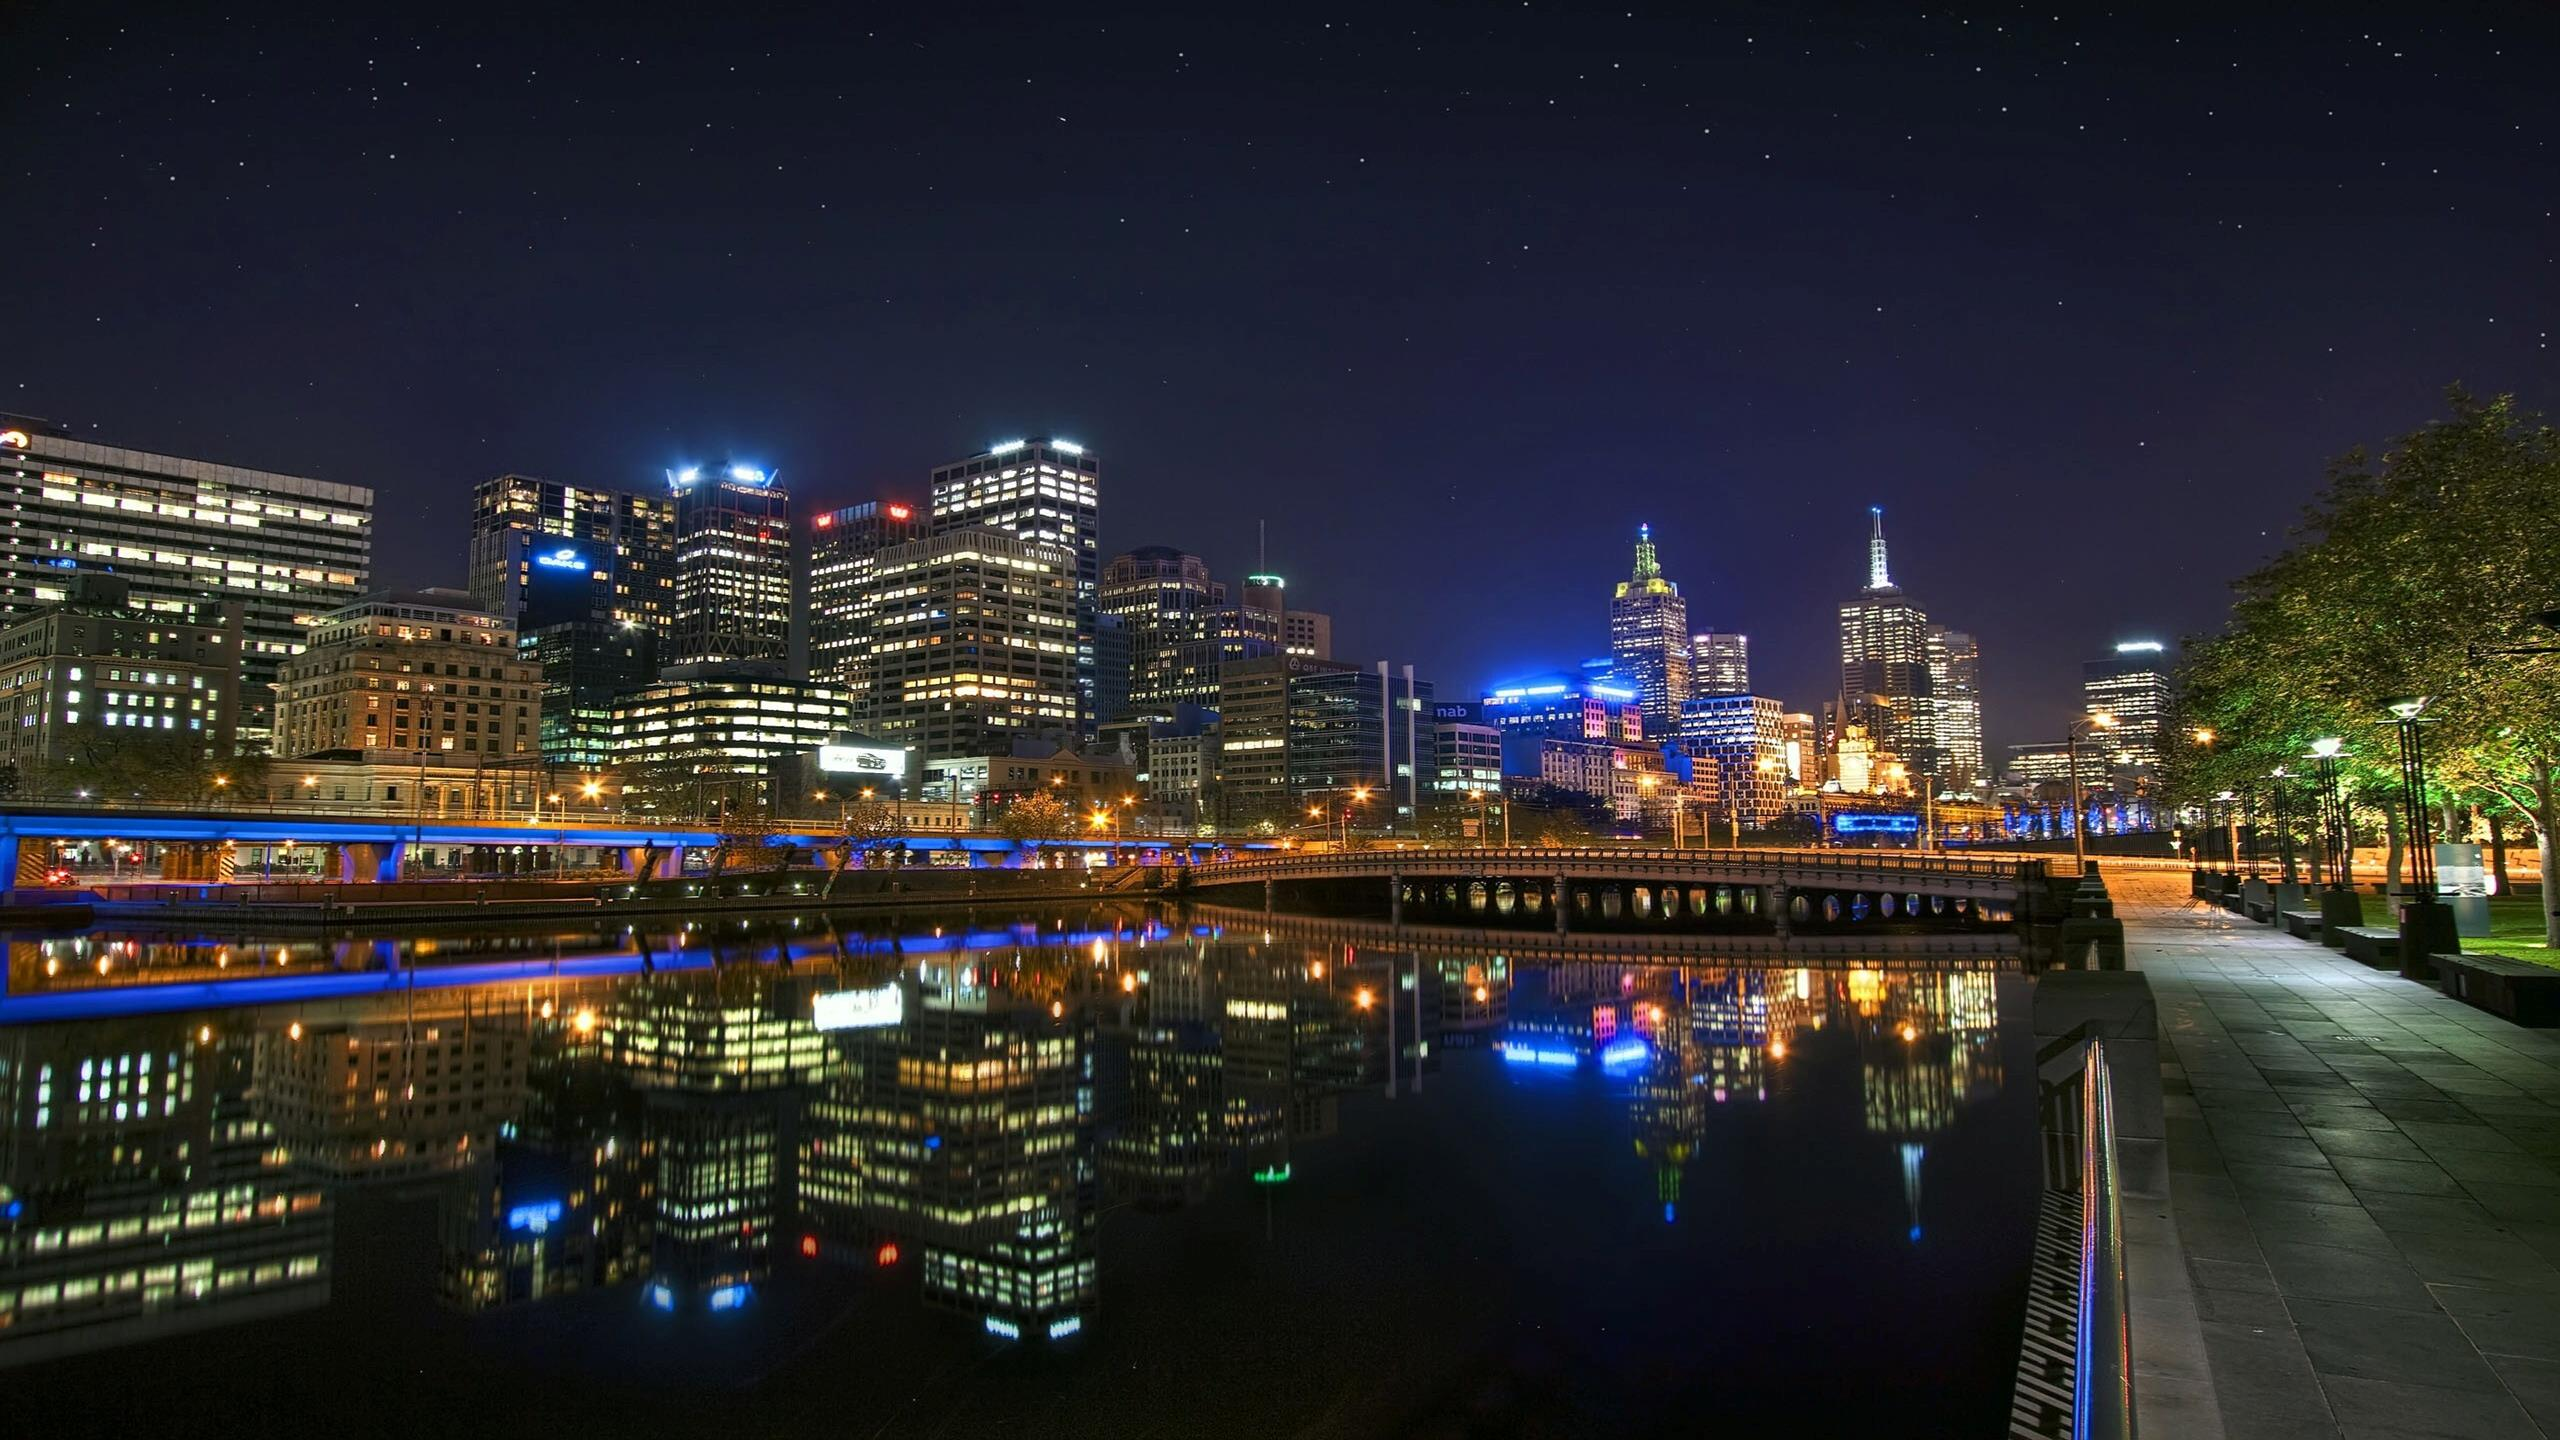 2560x1440 Night Look of City Melbourne in Australia HD Wallpapers